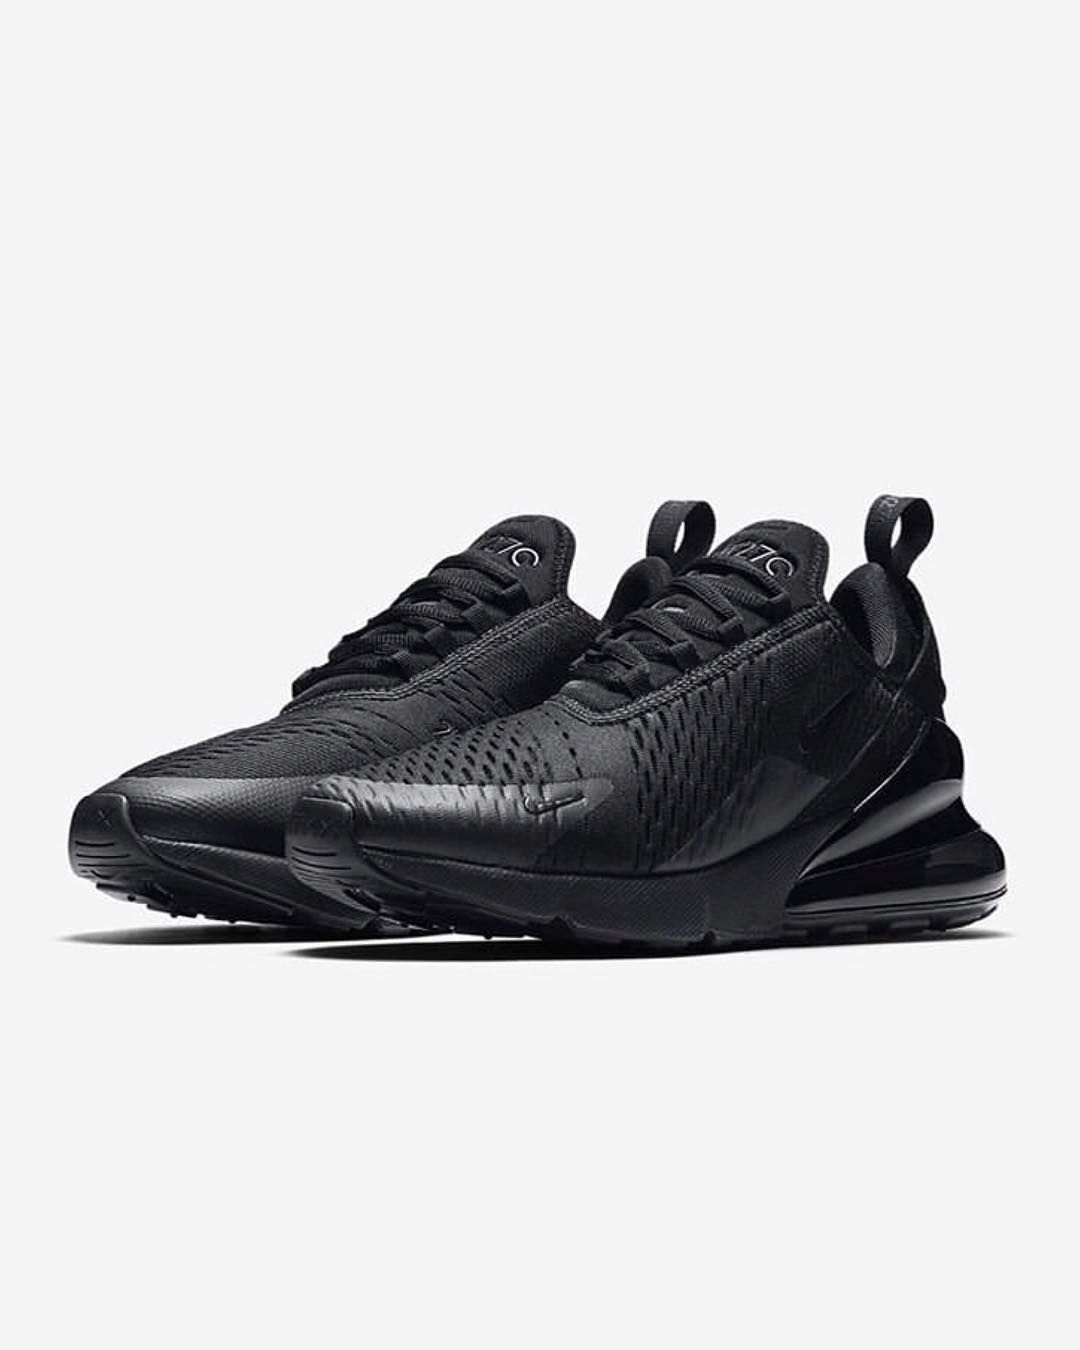 Nike Air Max 270 in schwarz AH8050 005 | Nike air, Nike